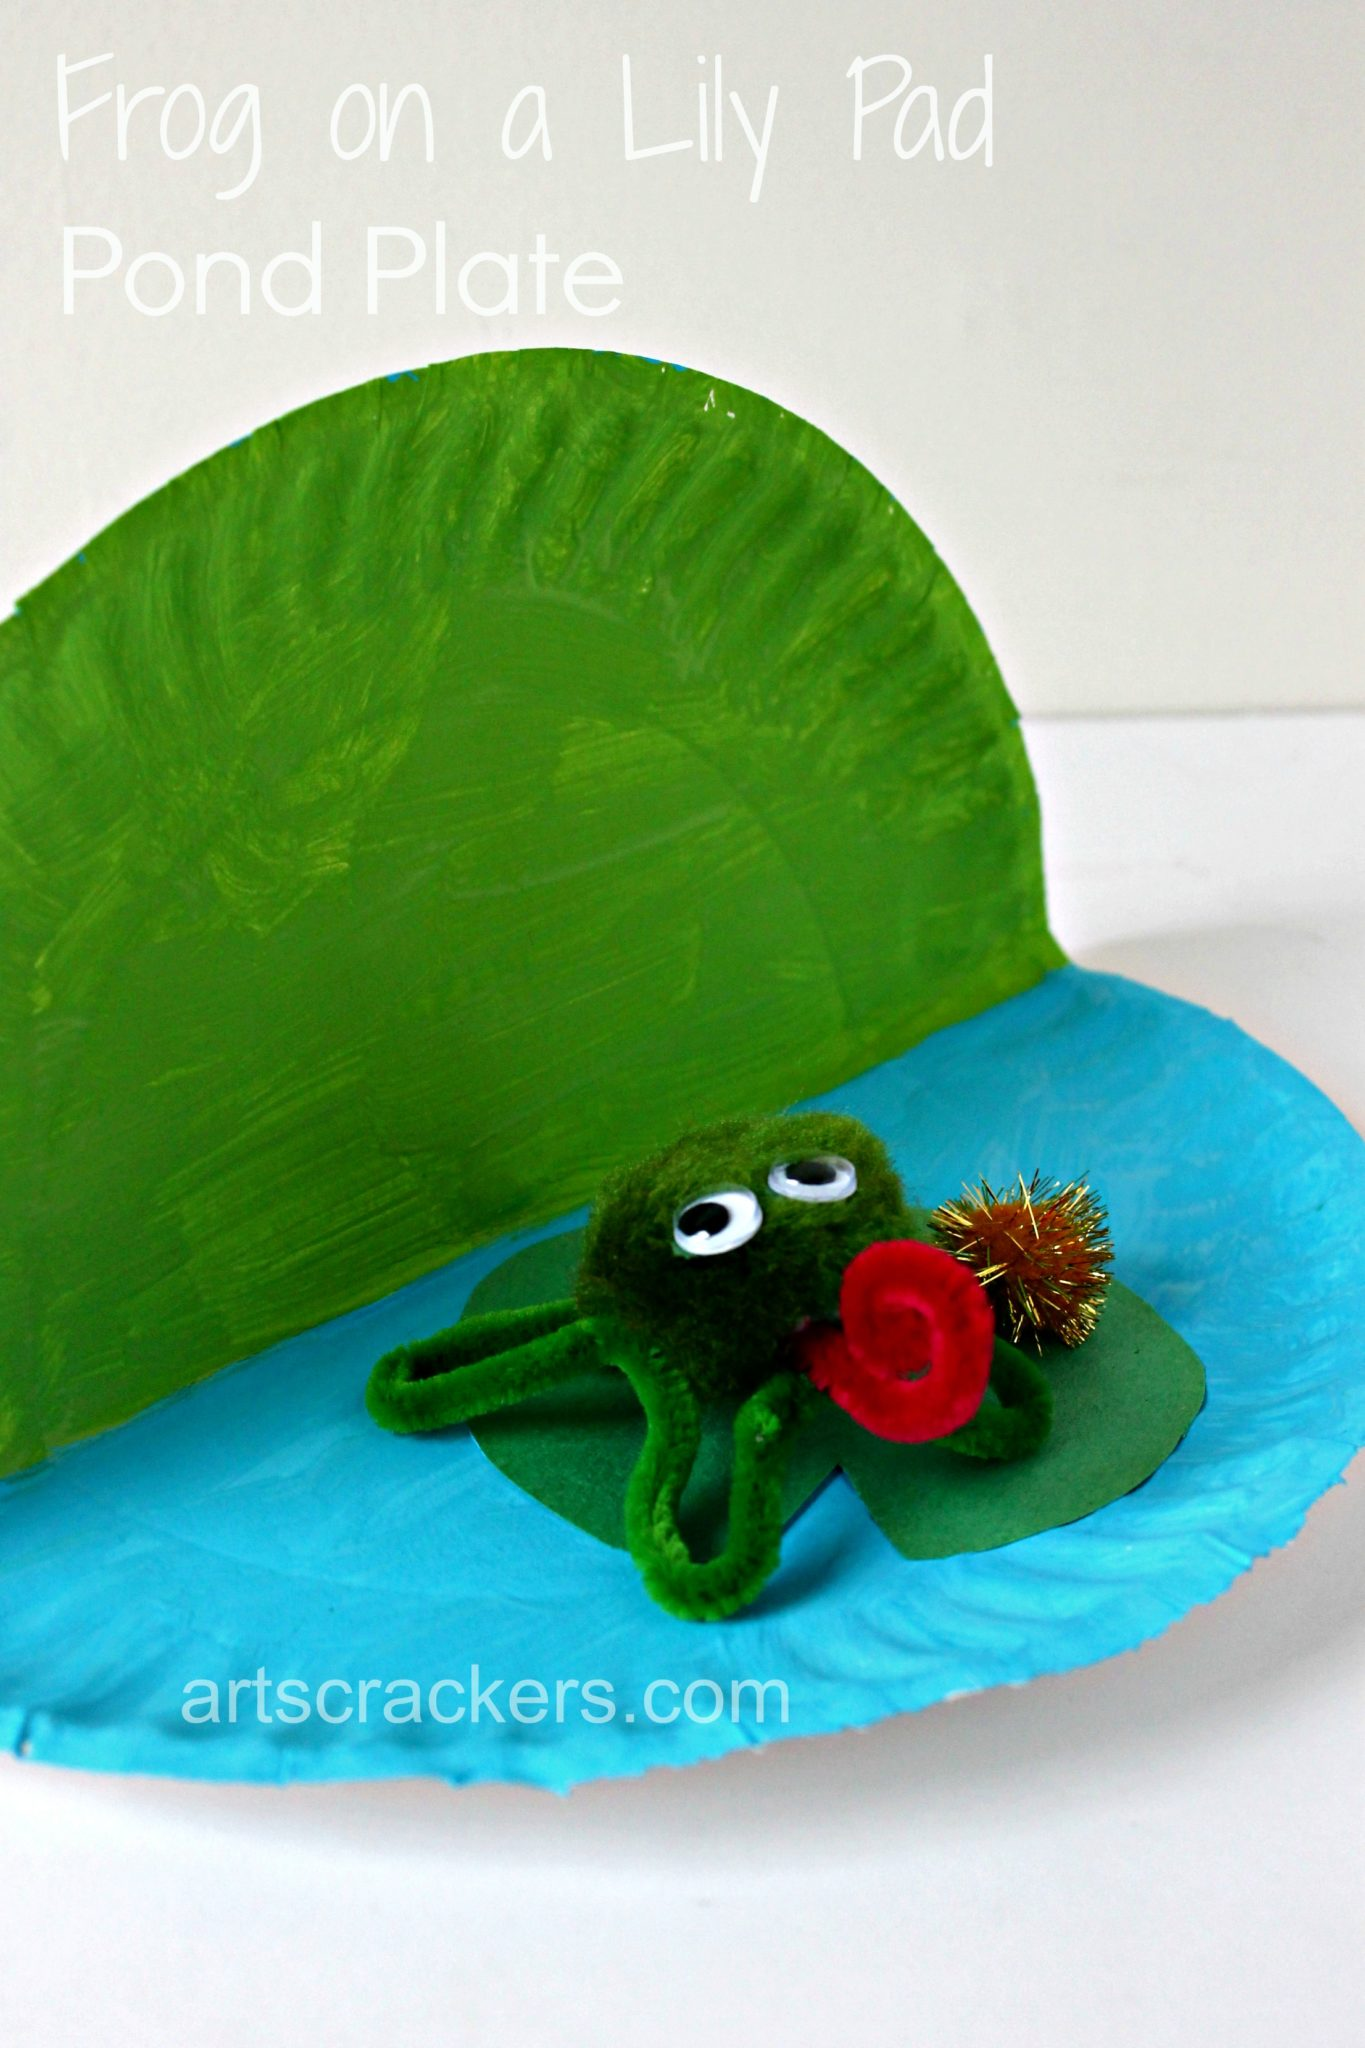 Frog on a Lily Pad Pond Plate Project. Click the picture to read the instructions and get bonus ideas.